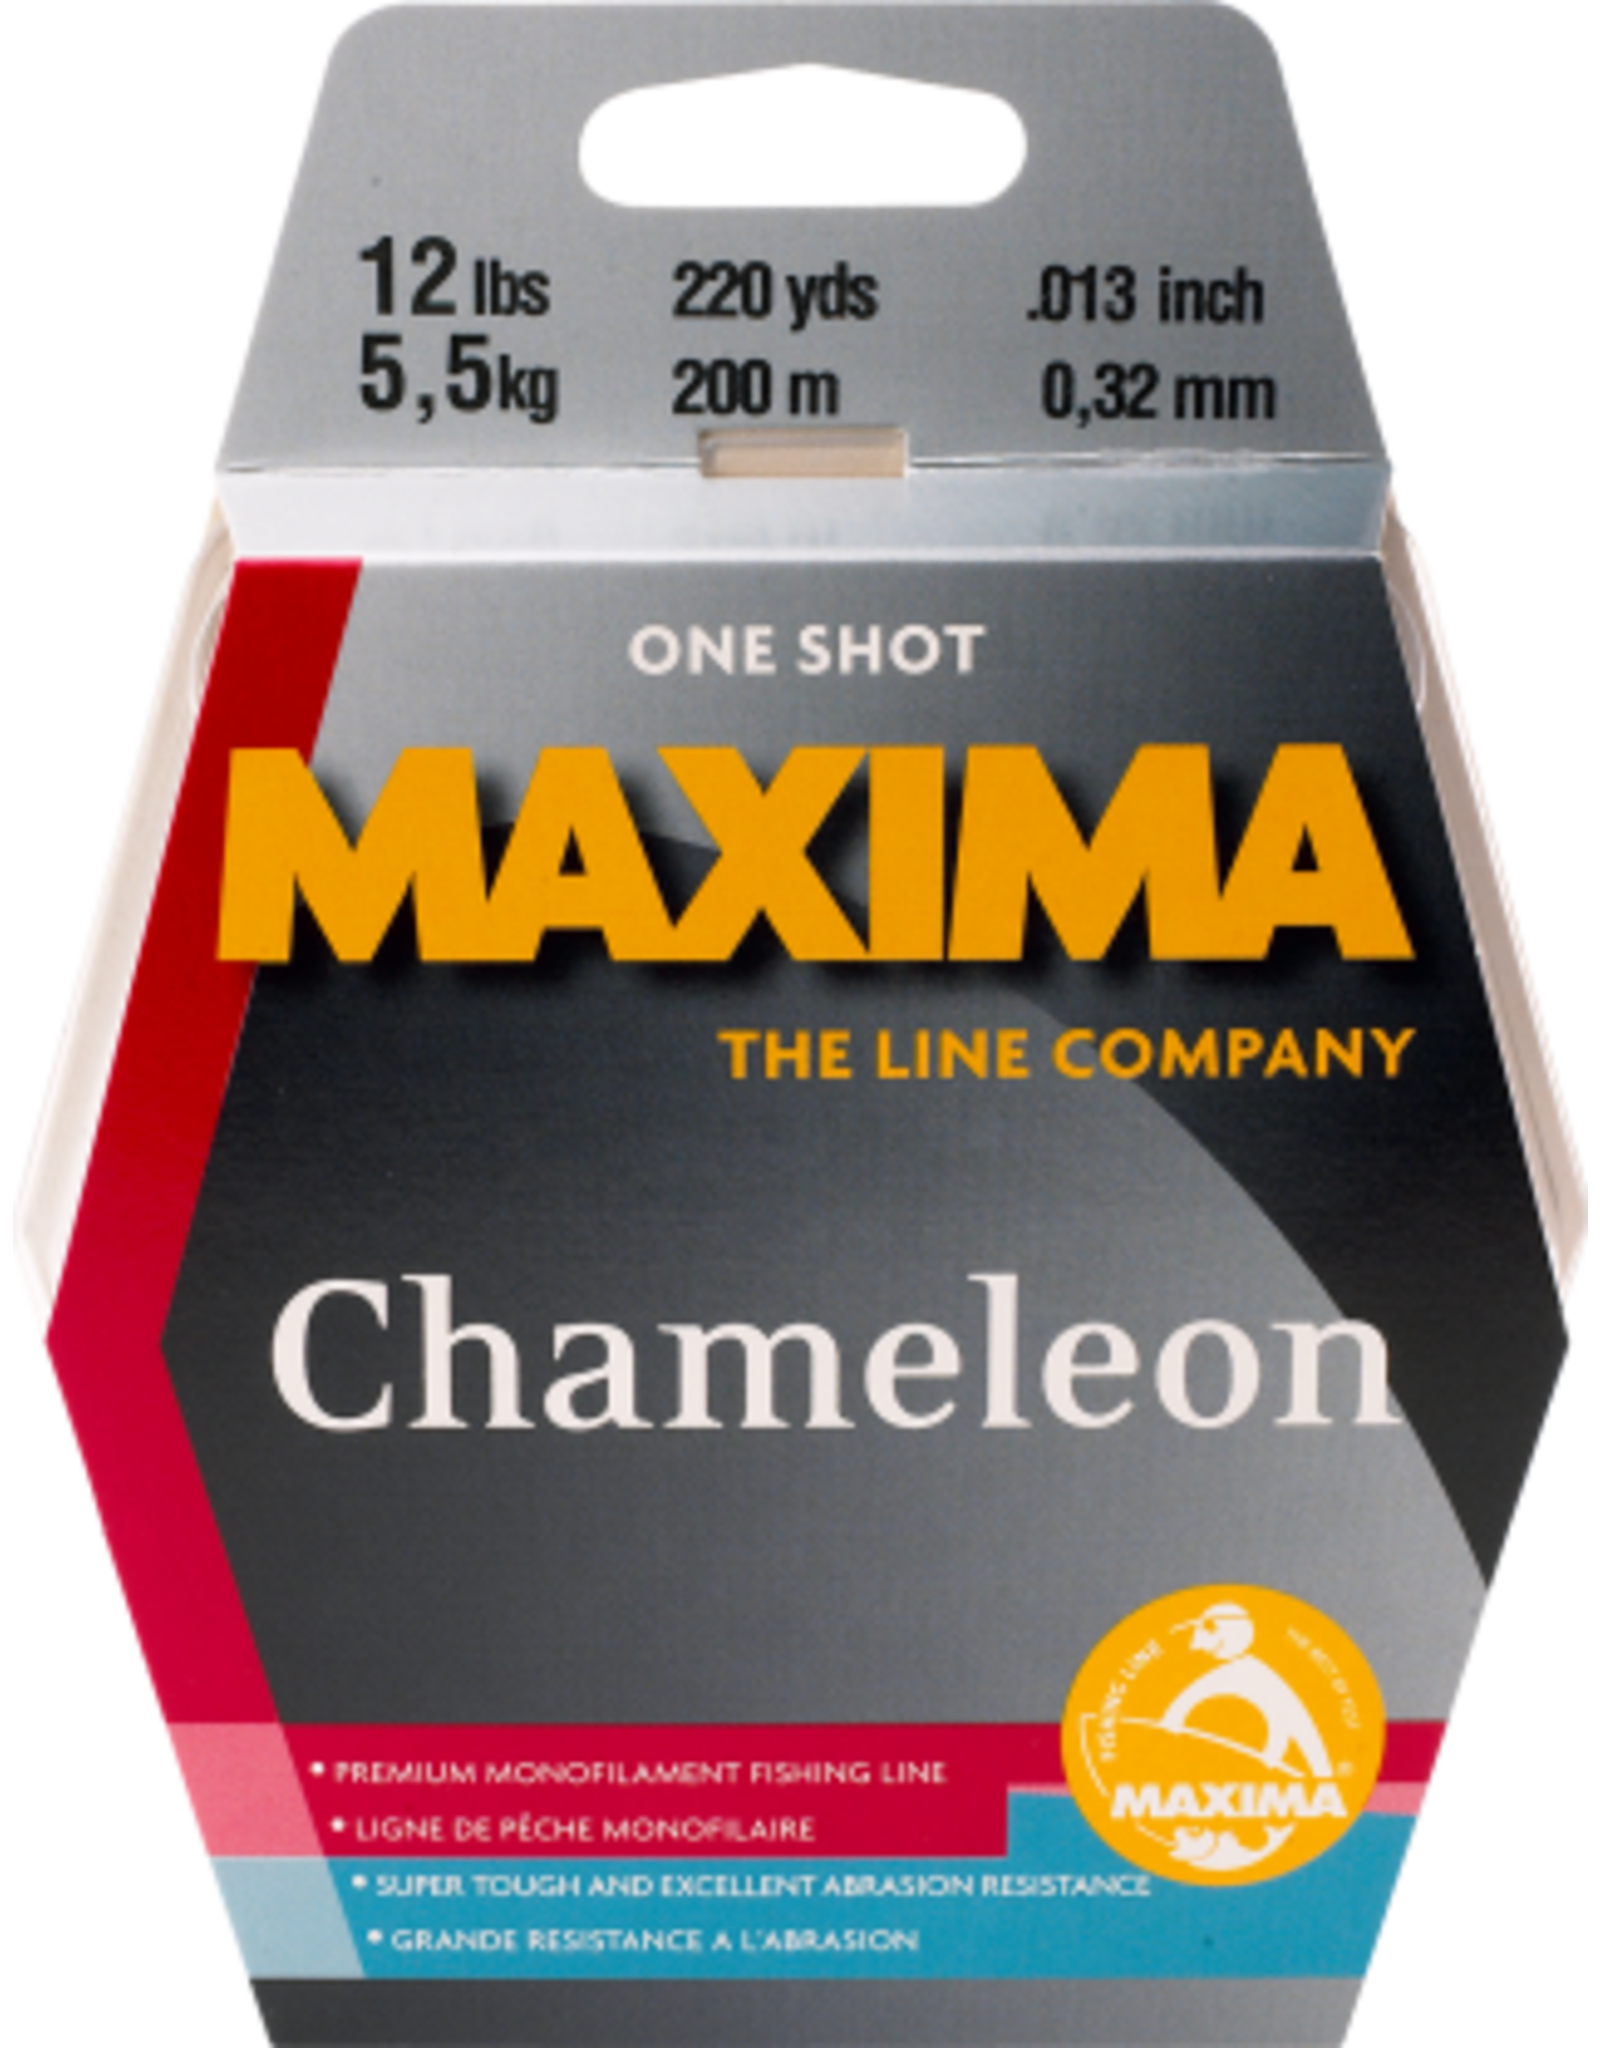 Maxima Maxima Chameleon One Shot Spool